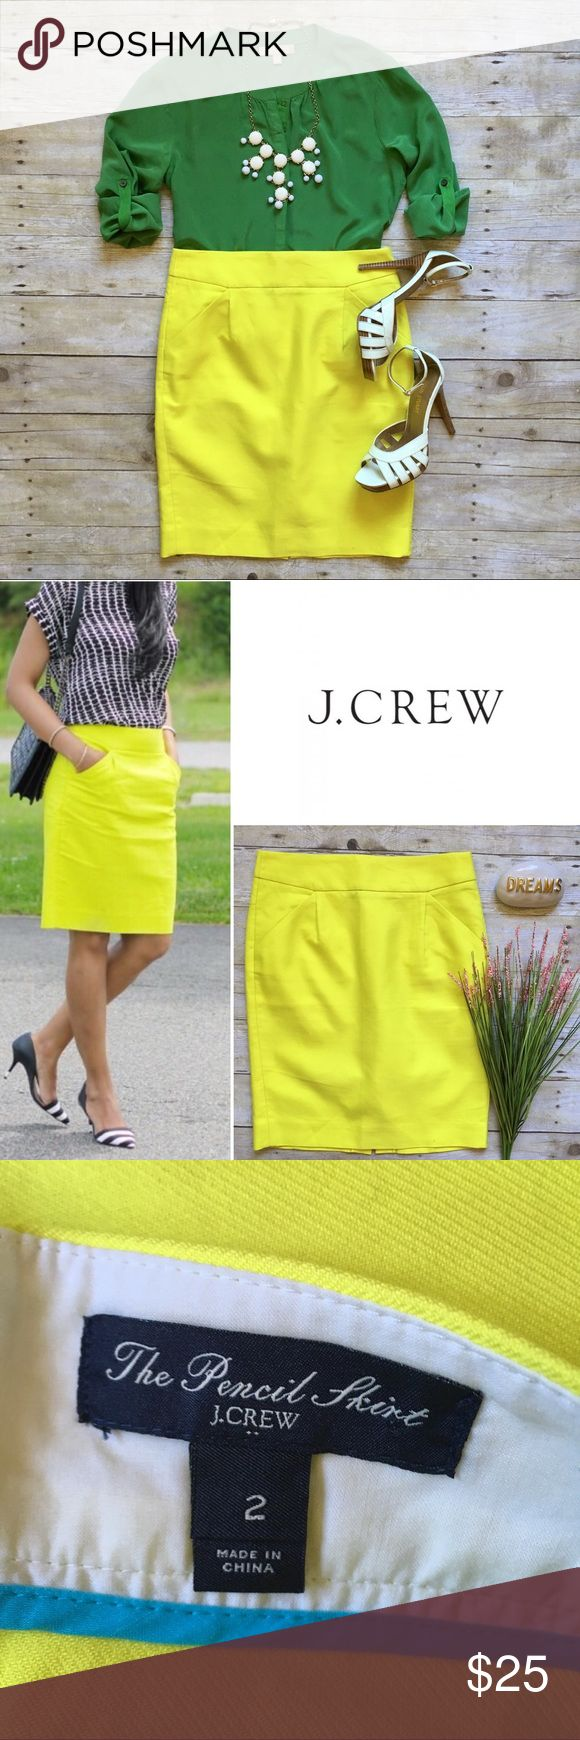 """J. Crew bright yellow pencil skirt Wear this bright skirt with neutrals or pump it under with contrast colors, as shown (both looks available in my closet, bundle and save). J. Crew factory. Back zip. Pockets! In excellent condition. Cotton. 21""""L. 14"""" waist laying flat. Size 2. J. Crew Skirts Pencil"""